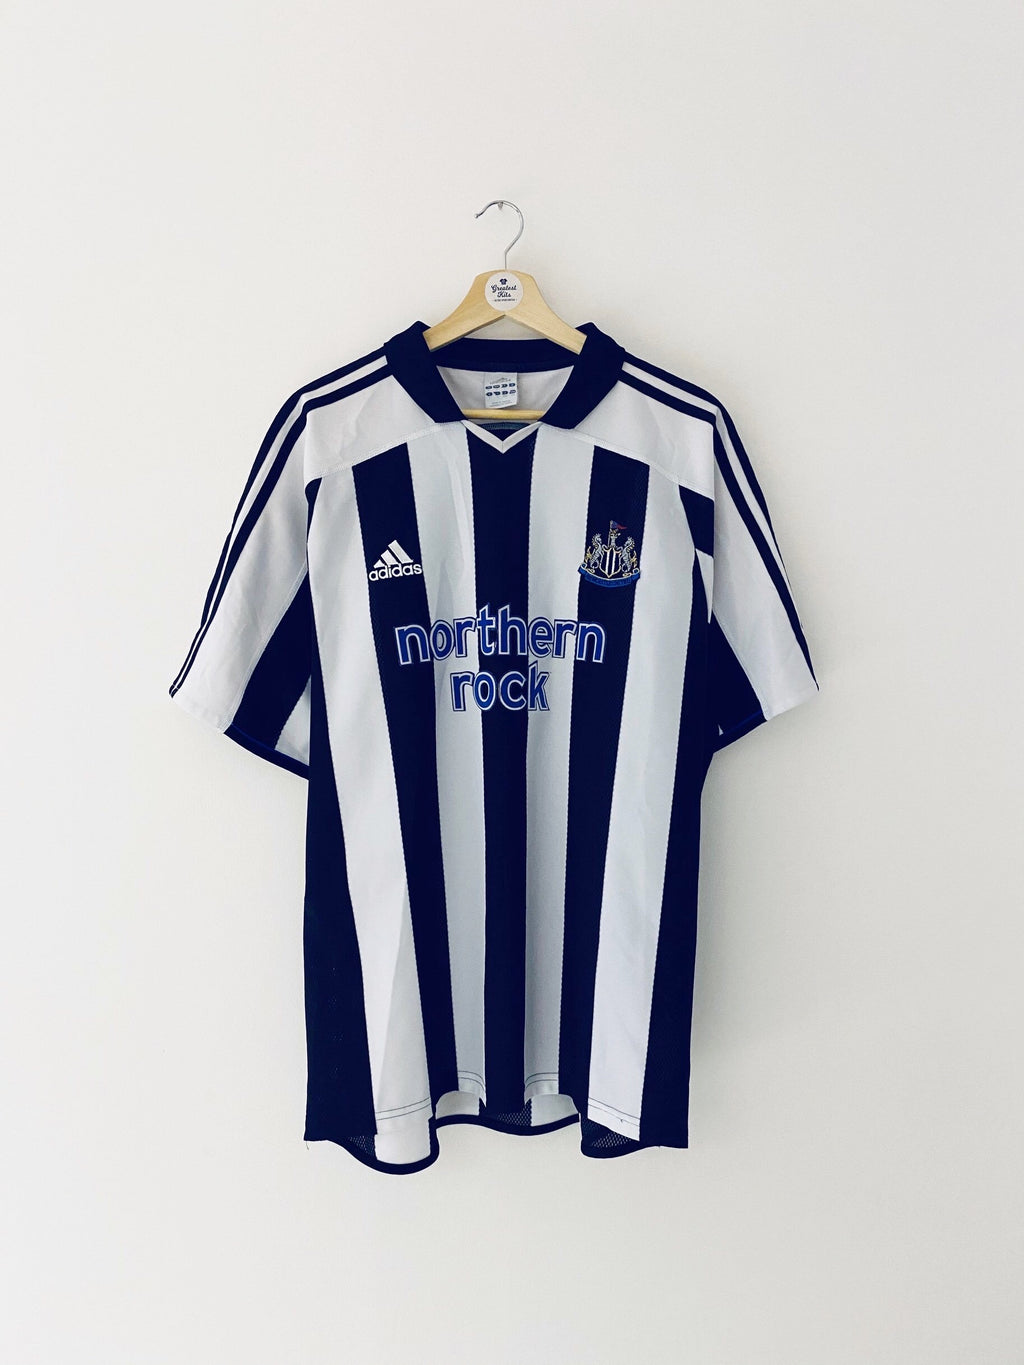 2003/05 Newcastle Home Shirt (L) 6.5/10